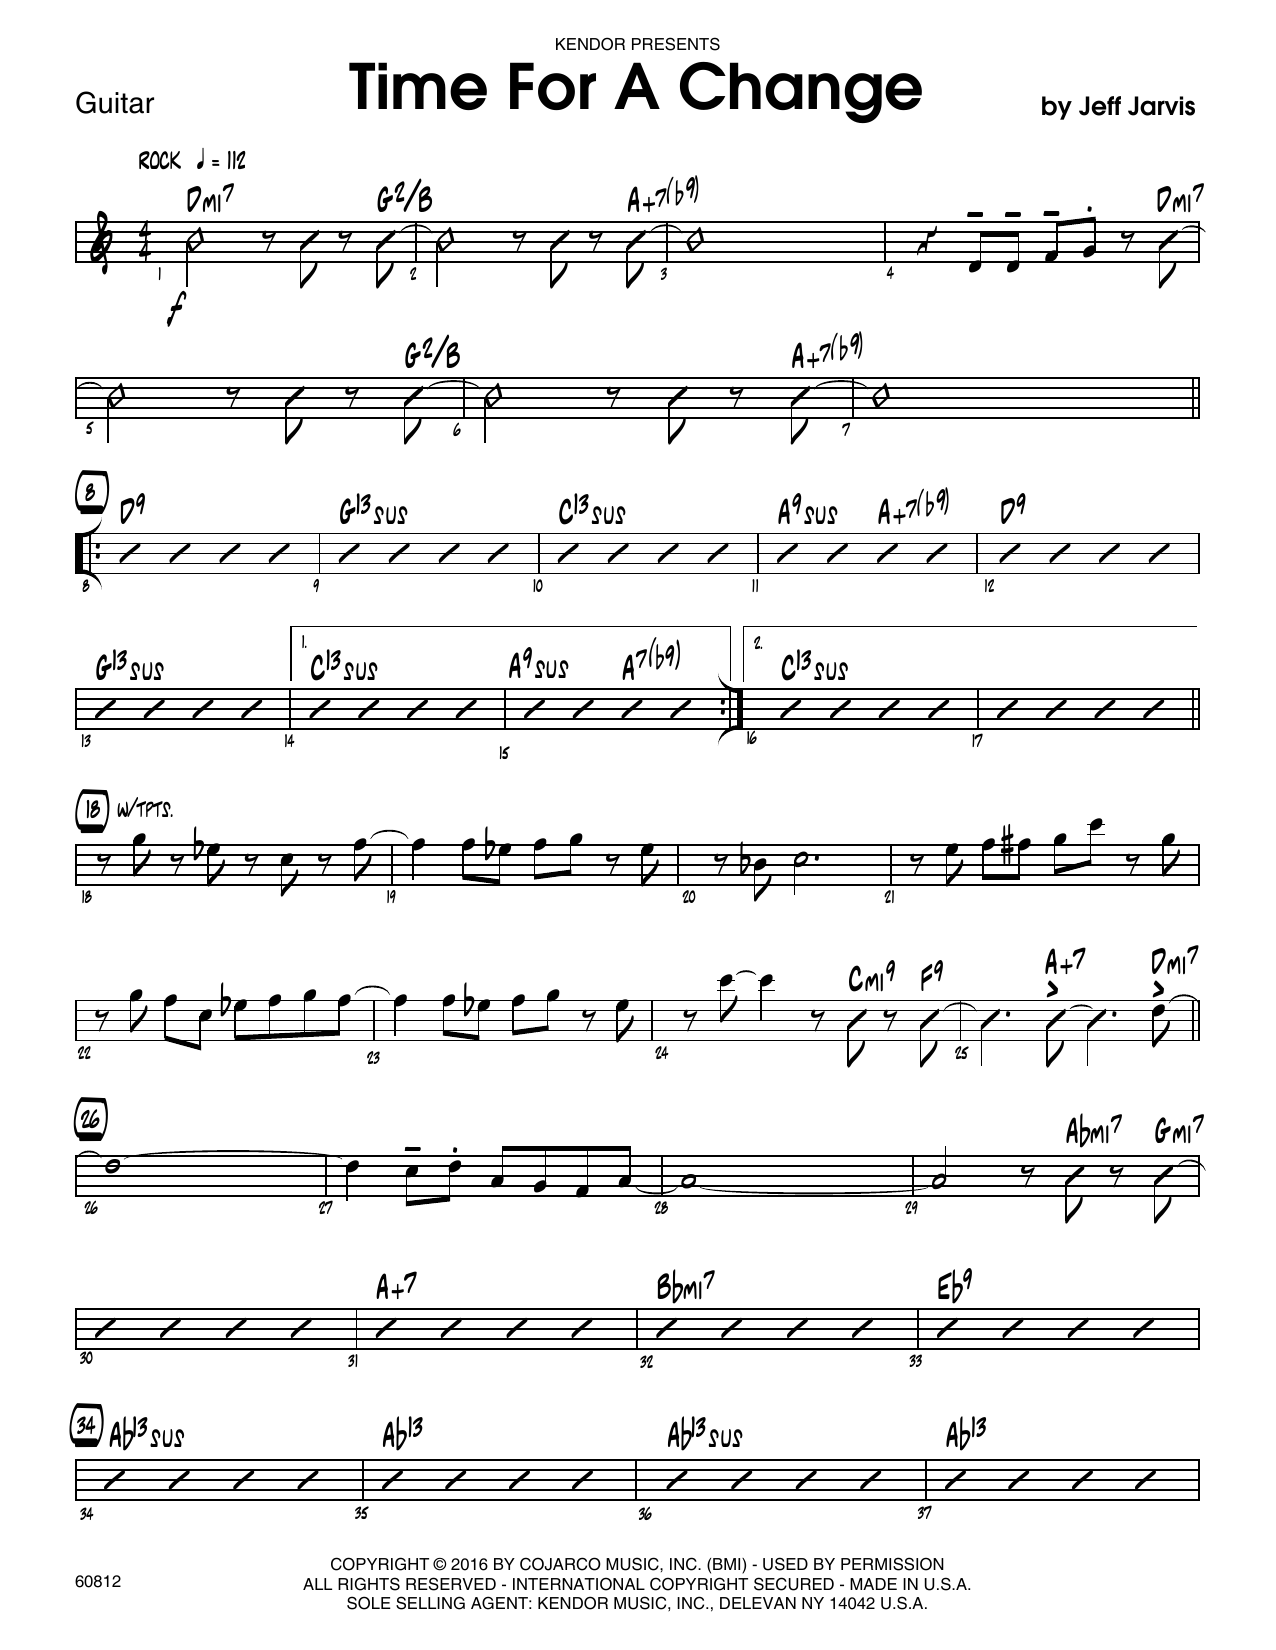 Time For A Change - Guitar Sheet Music